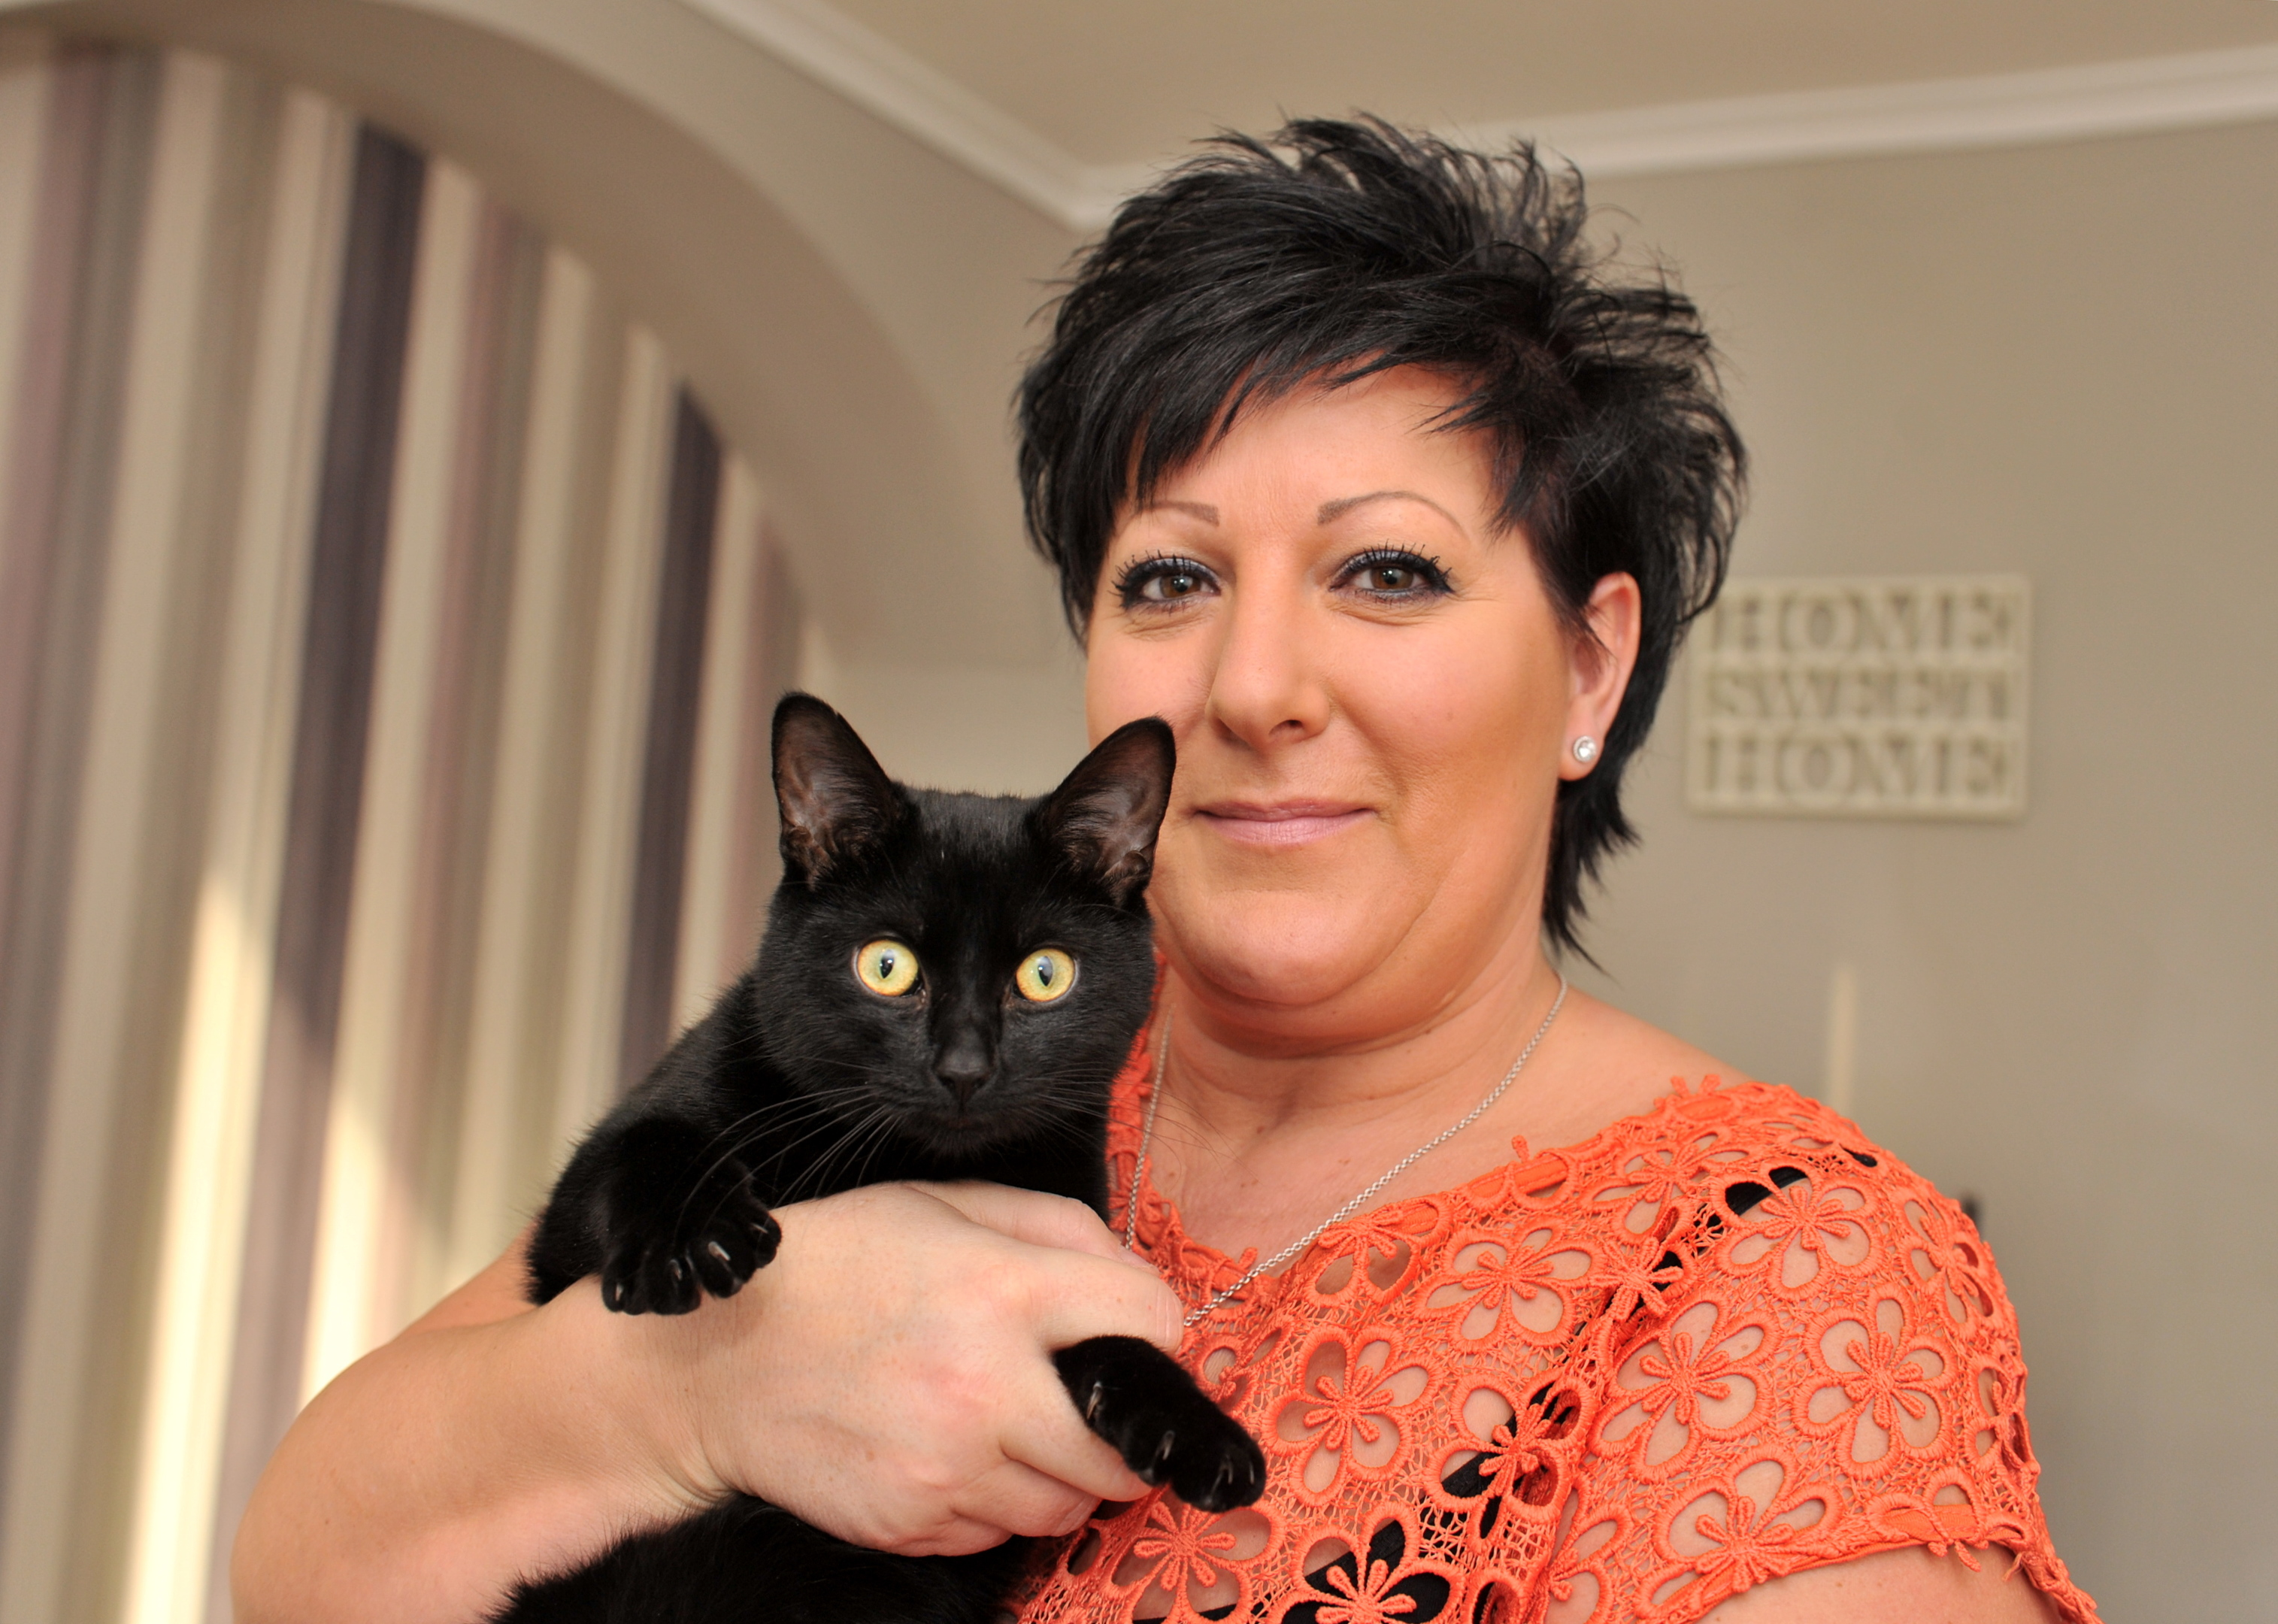 Mo will keep the fugitive feline until its owner is found.